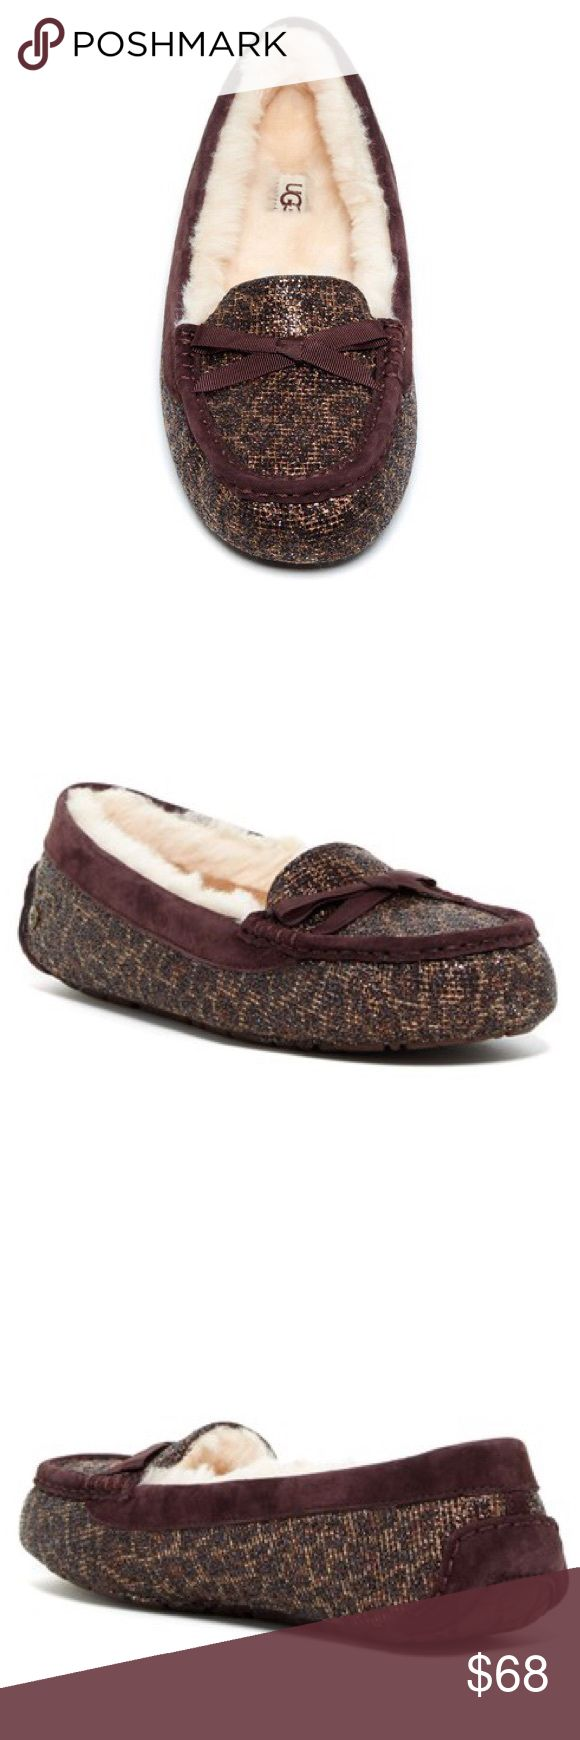 New Ugg Australia Rylee Moccasins Ugg Australia Rylee Moccasins •New without box •Size 7 •Retails for $120  Check out my other listings- Nike, adidas, Michael Kors, Kate Spade, Miss Me, Coach, Wildfox, Victoria's Secret, PINK, Under Armour, True Religion, Ugg Australia, Free People and more! UGG Shoes Moccasins